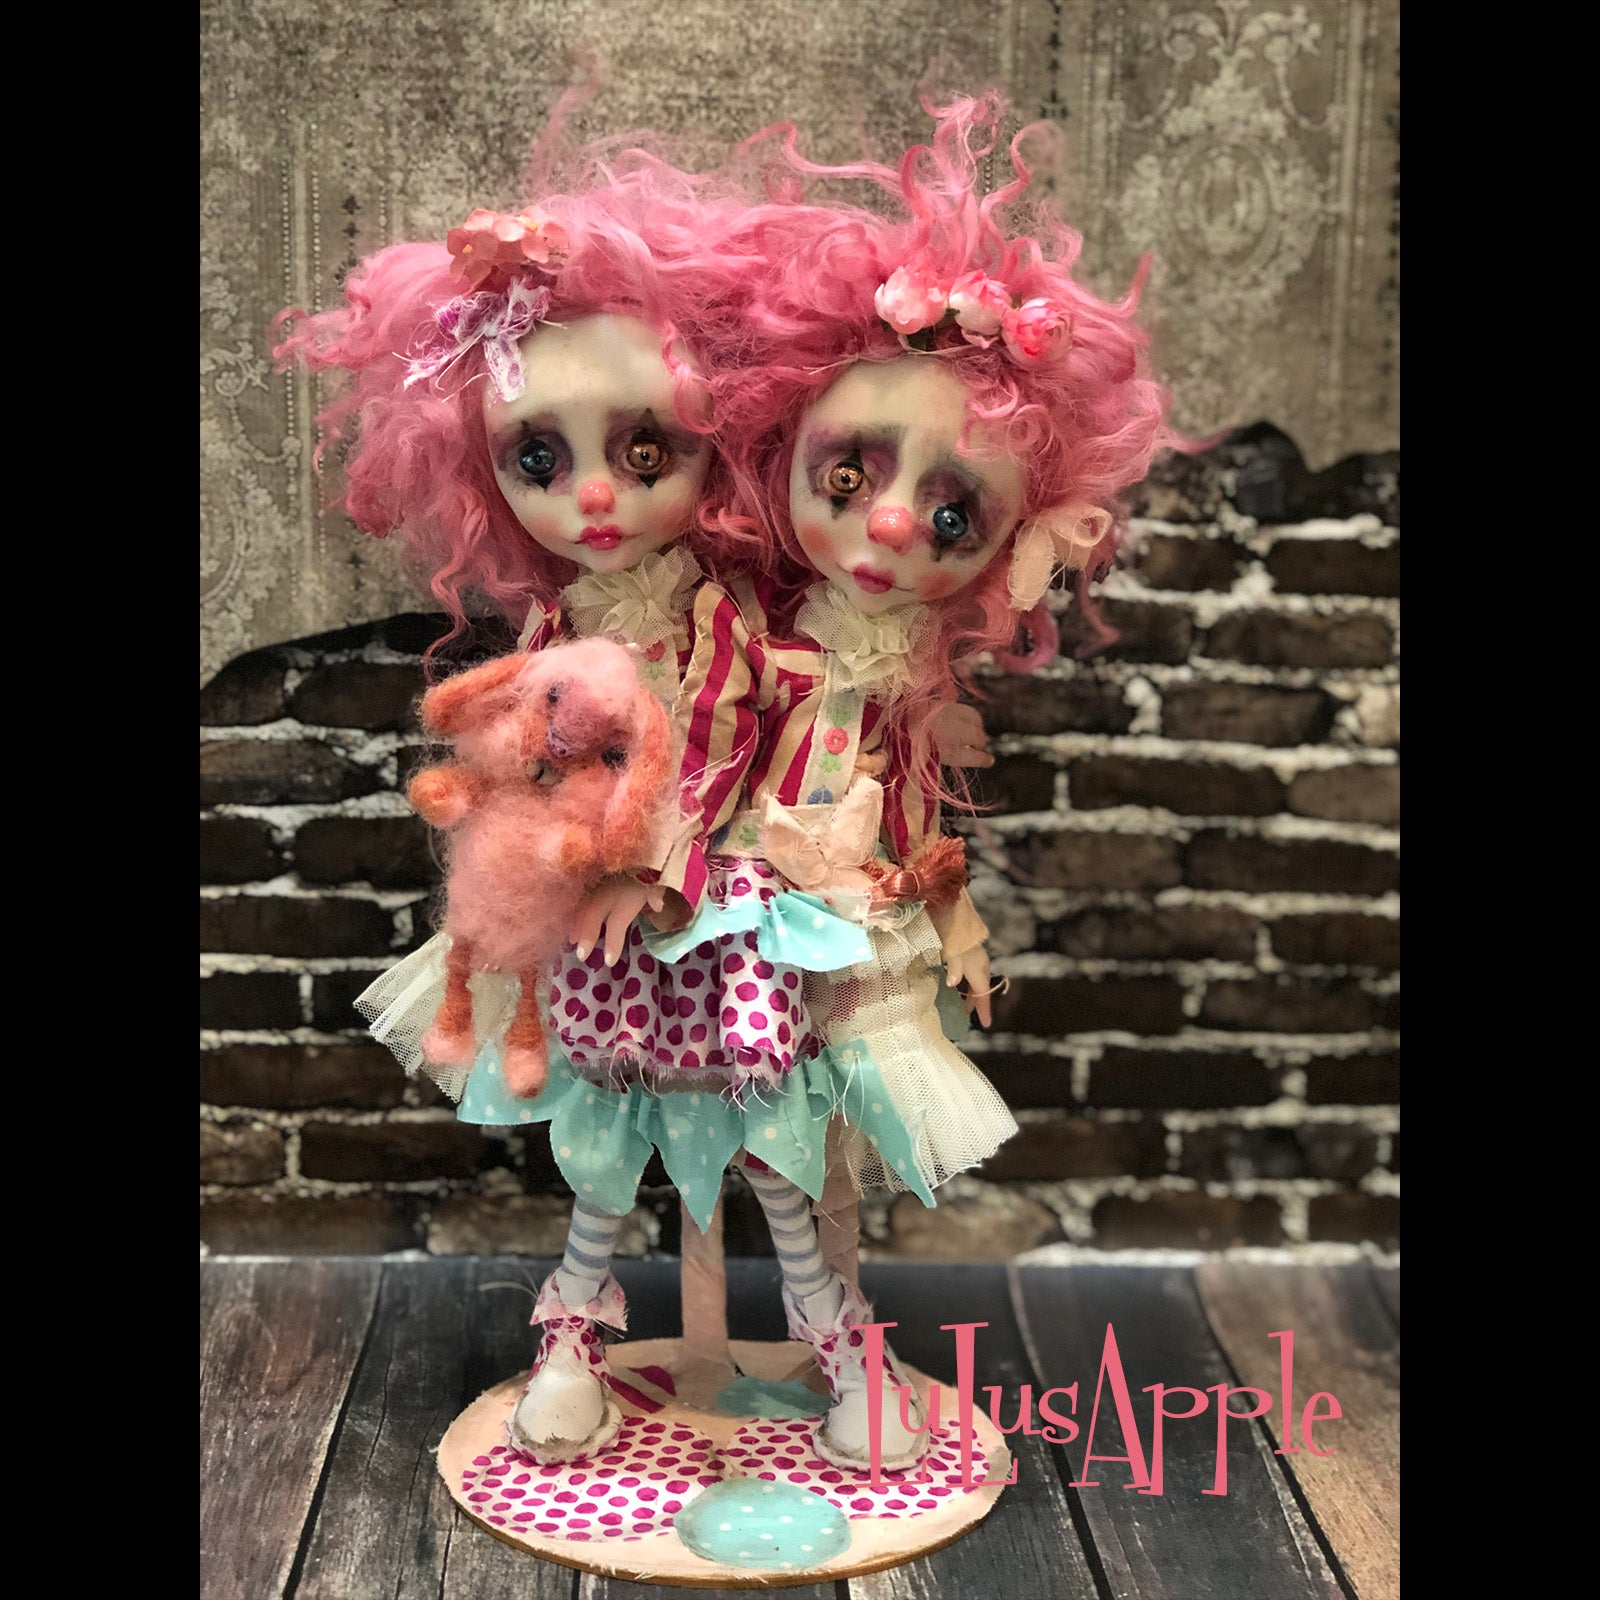 Strawberry Soda the bunny and Pop Conjoined Gothic Clown Twins OOAK Art Dolls LuLusApple